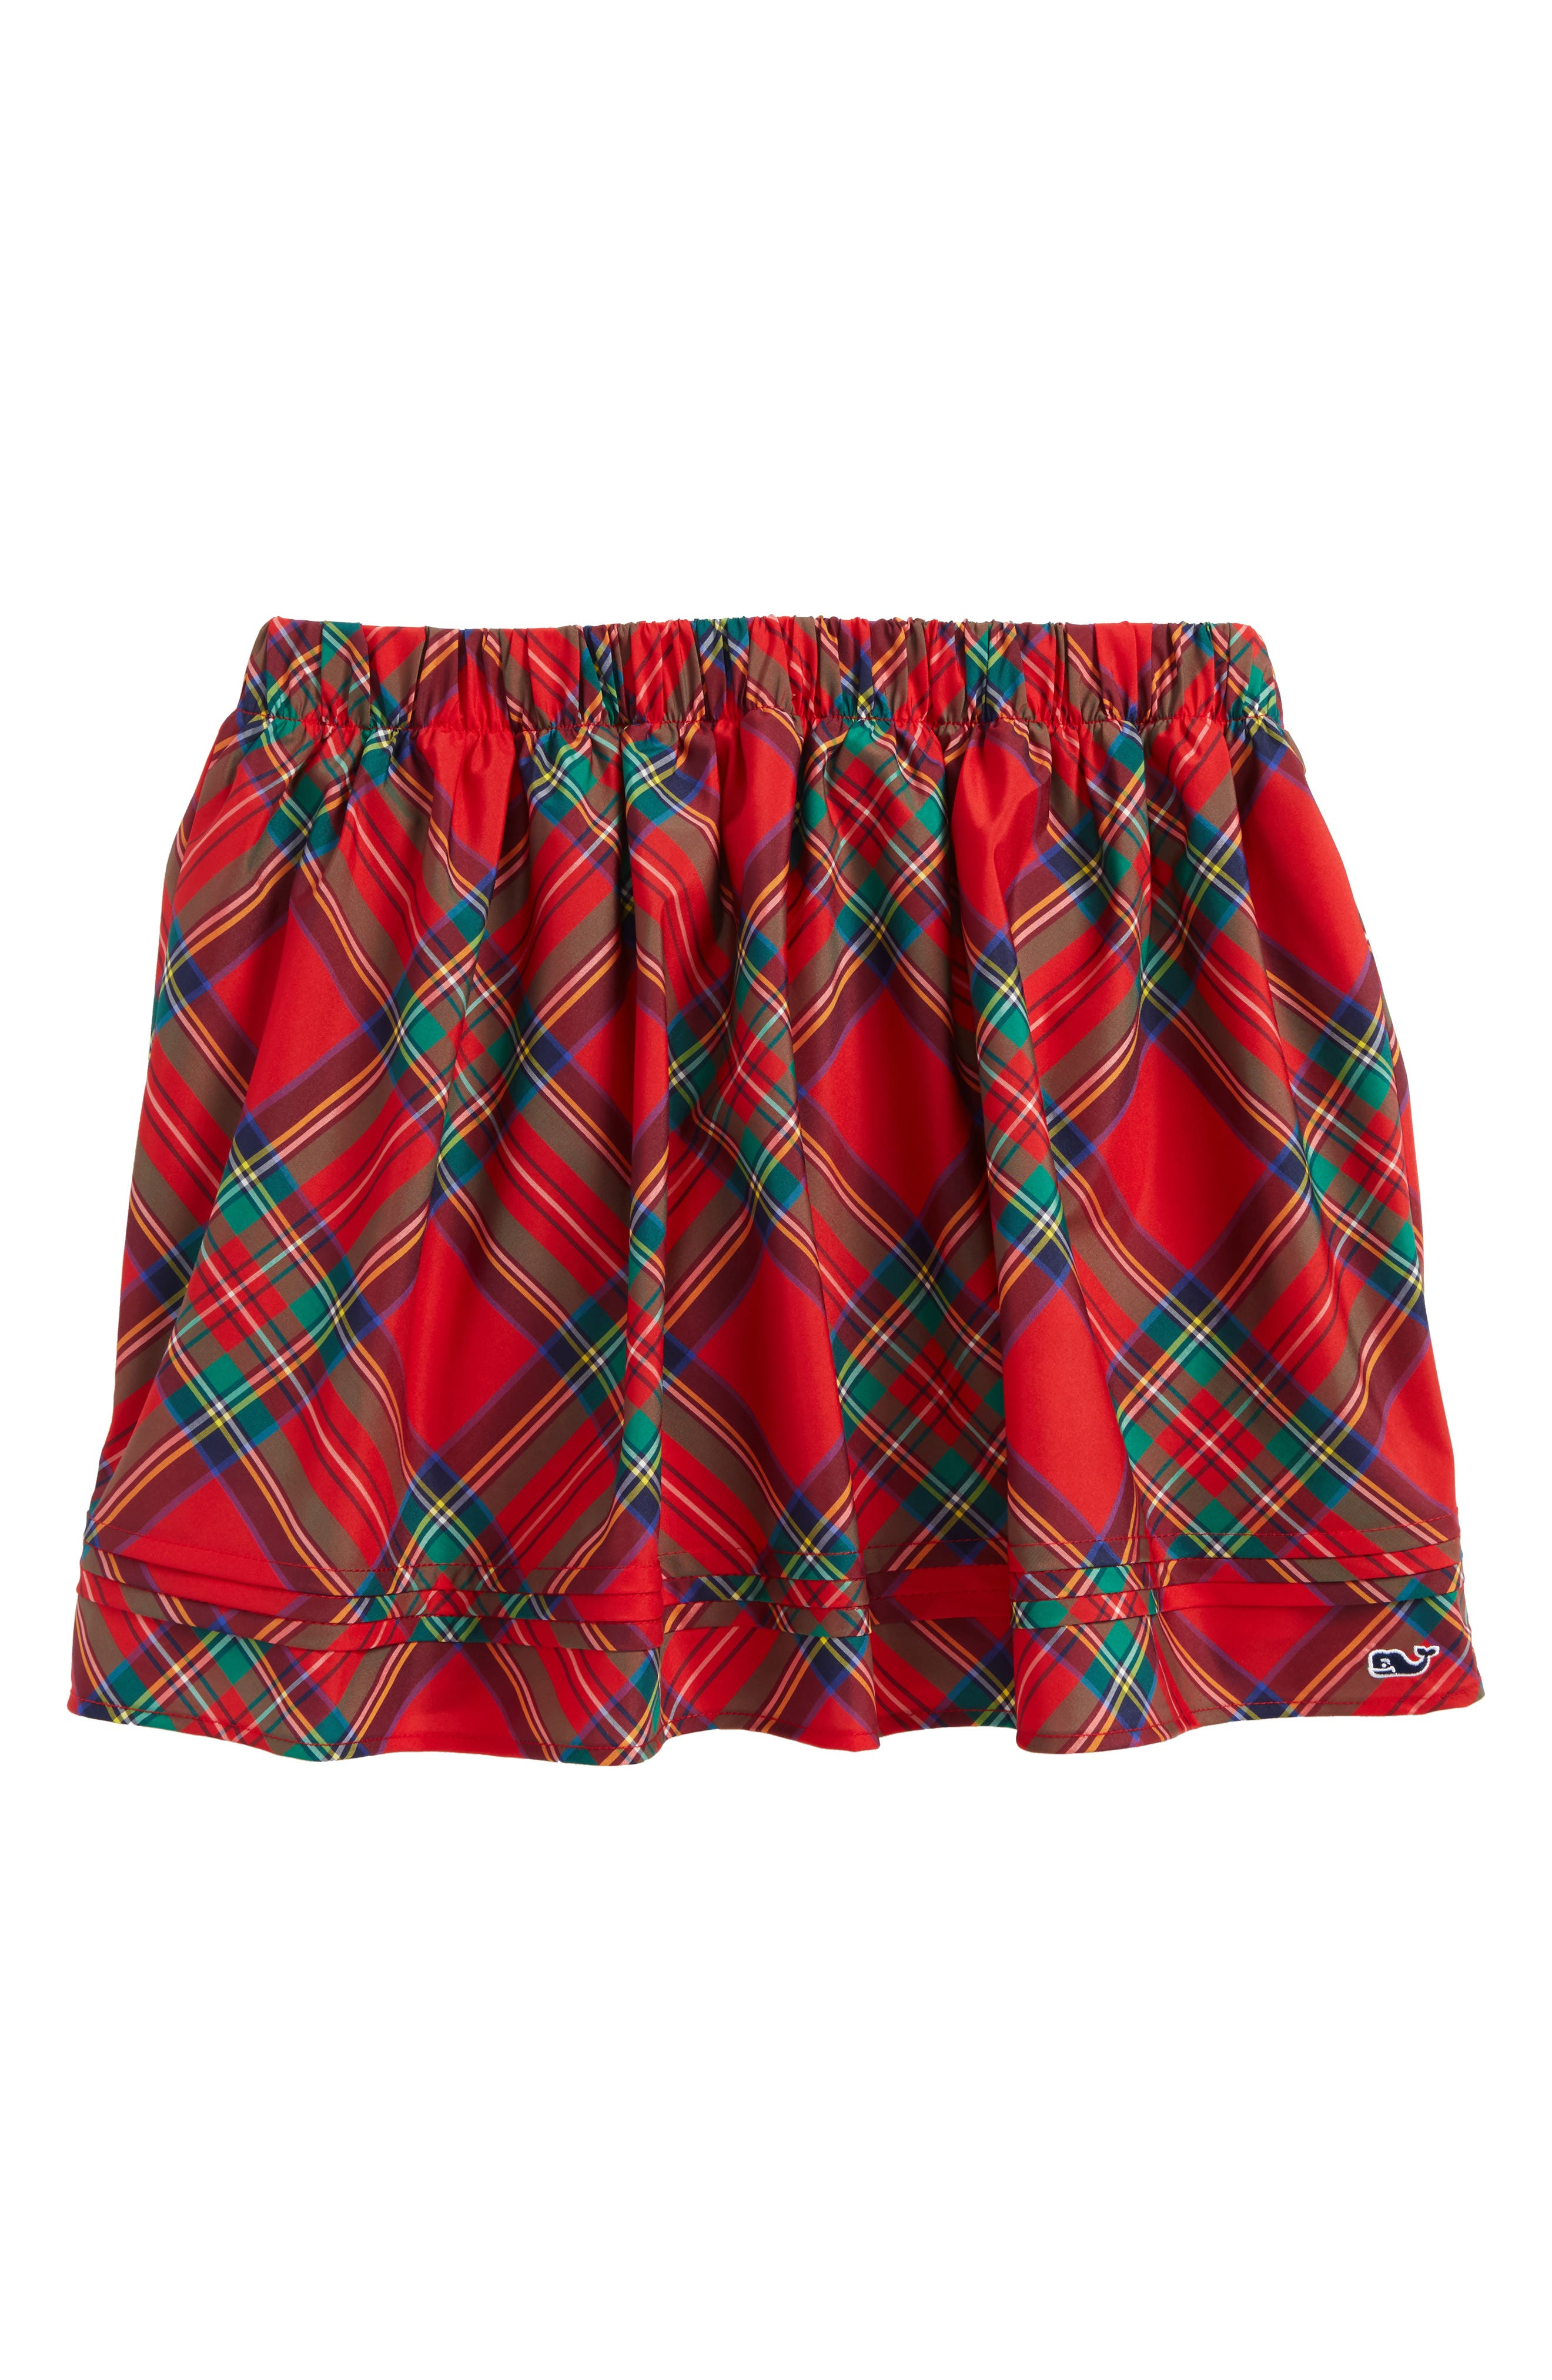 Jolly Plaid Holiday Skirt,                             Main thumbnail 1, color,                             Lighthouse Red